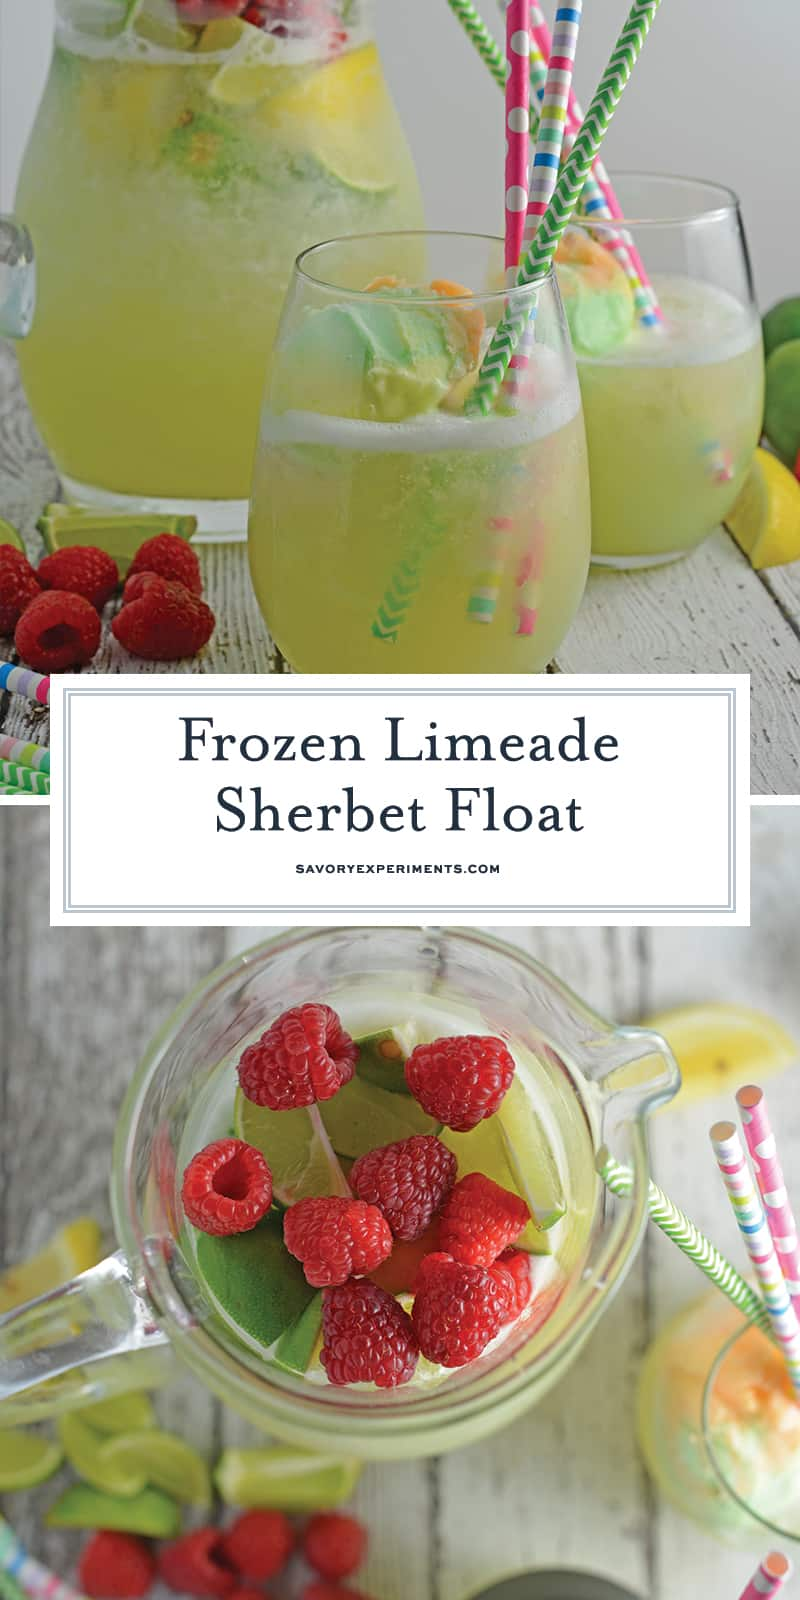 Frozen Limeade Sherbet Floats- a refreshing summer drink perfect for parties and BBQs! Cool limeade blended with ice and topped with a heaping scoop of rainbow sherbet! Perfect for kids, but an adult option available. #sherbetfloats #limeade www.savoryexperiments.com